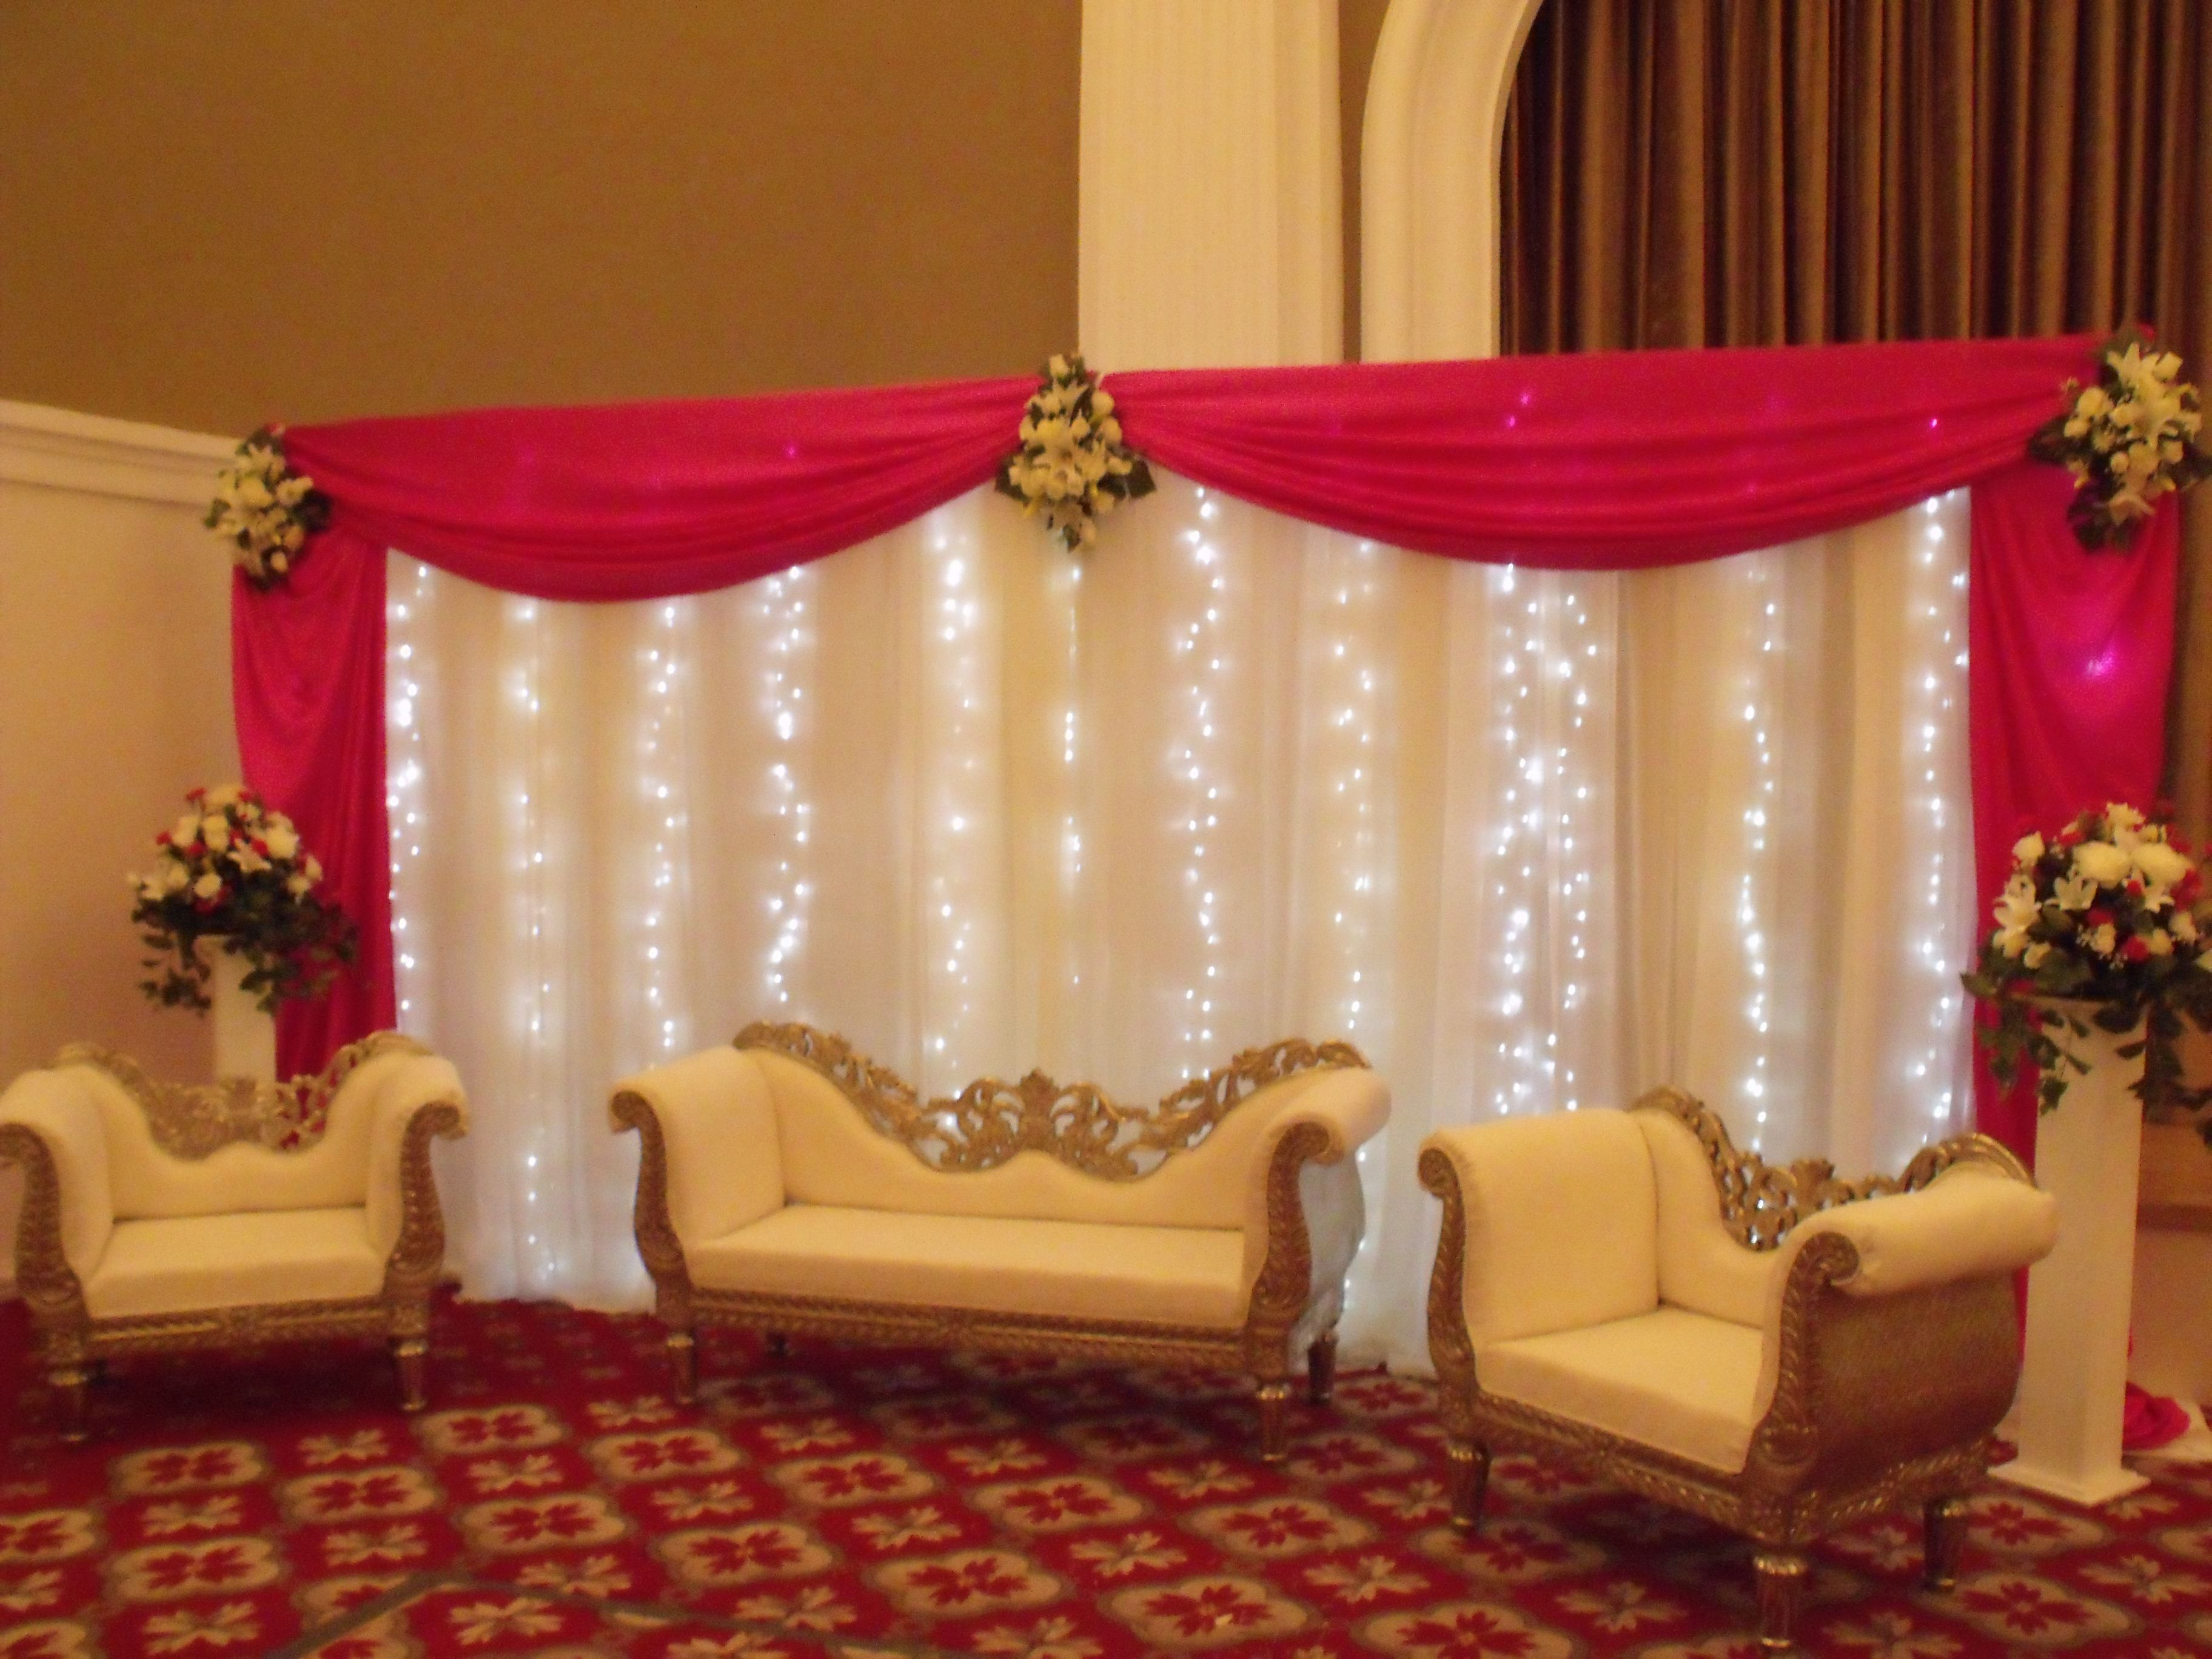 Wedding decorations wedding stage backdrops decoration Wedding decoration house